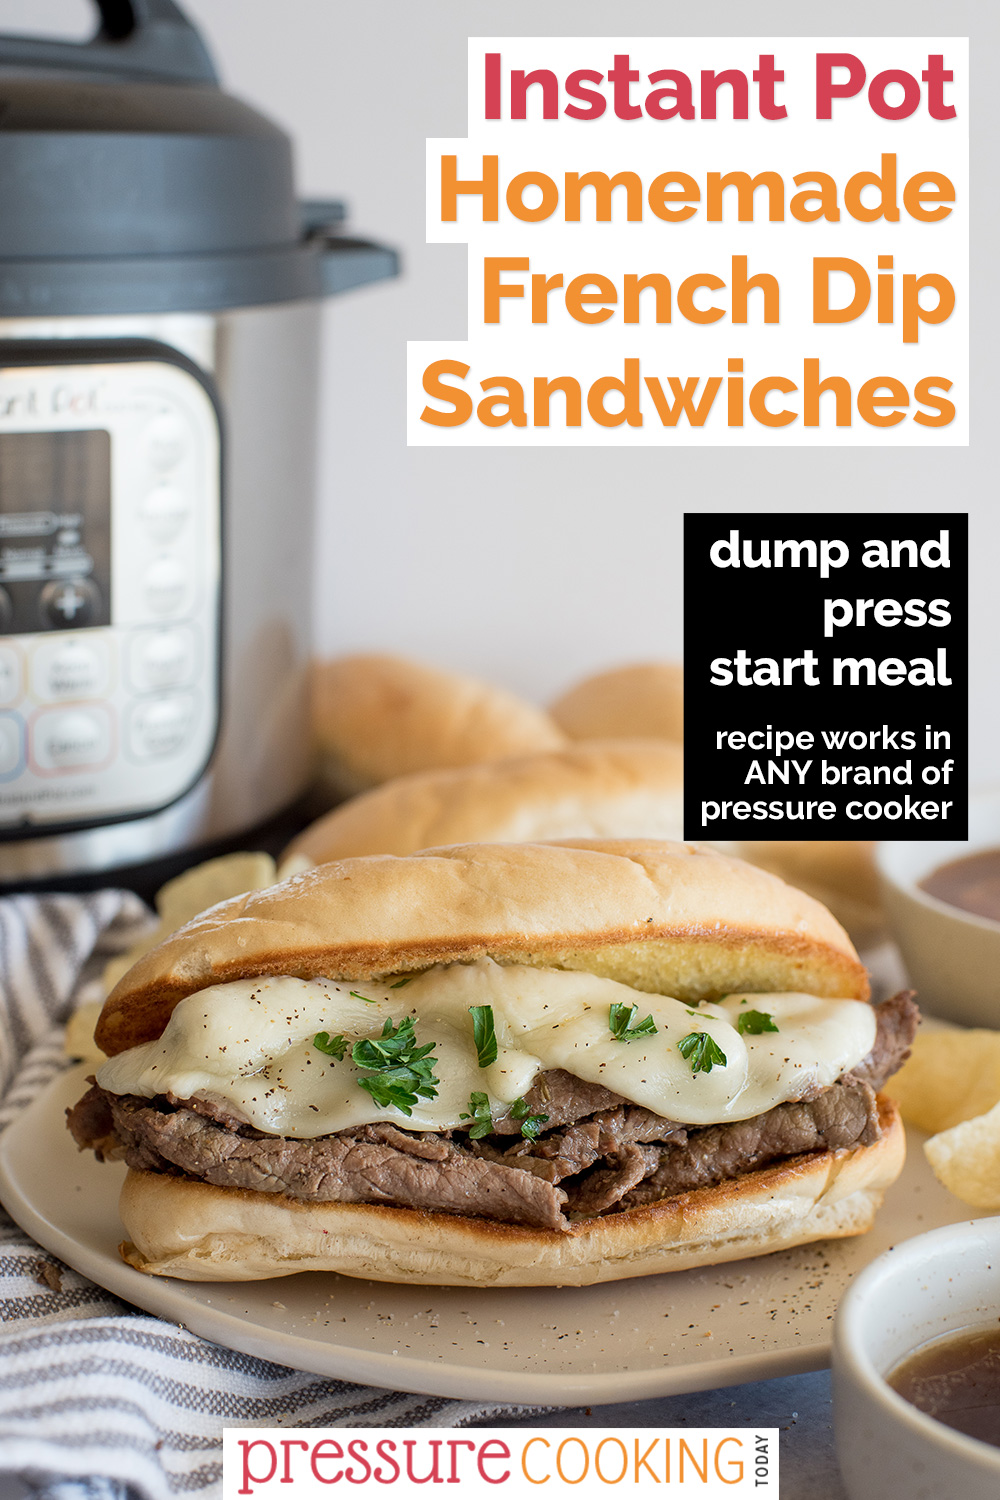 Easy French Dip Sandwiches that you can make in your Instant Pot. Makes a great rosemary garlic au jus dipping sauce and it starts with a mix to make life a little easier. via @PressureCook2da